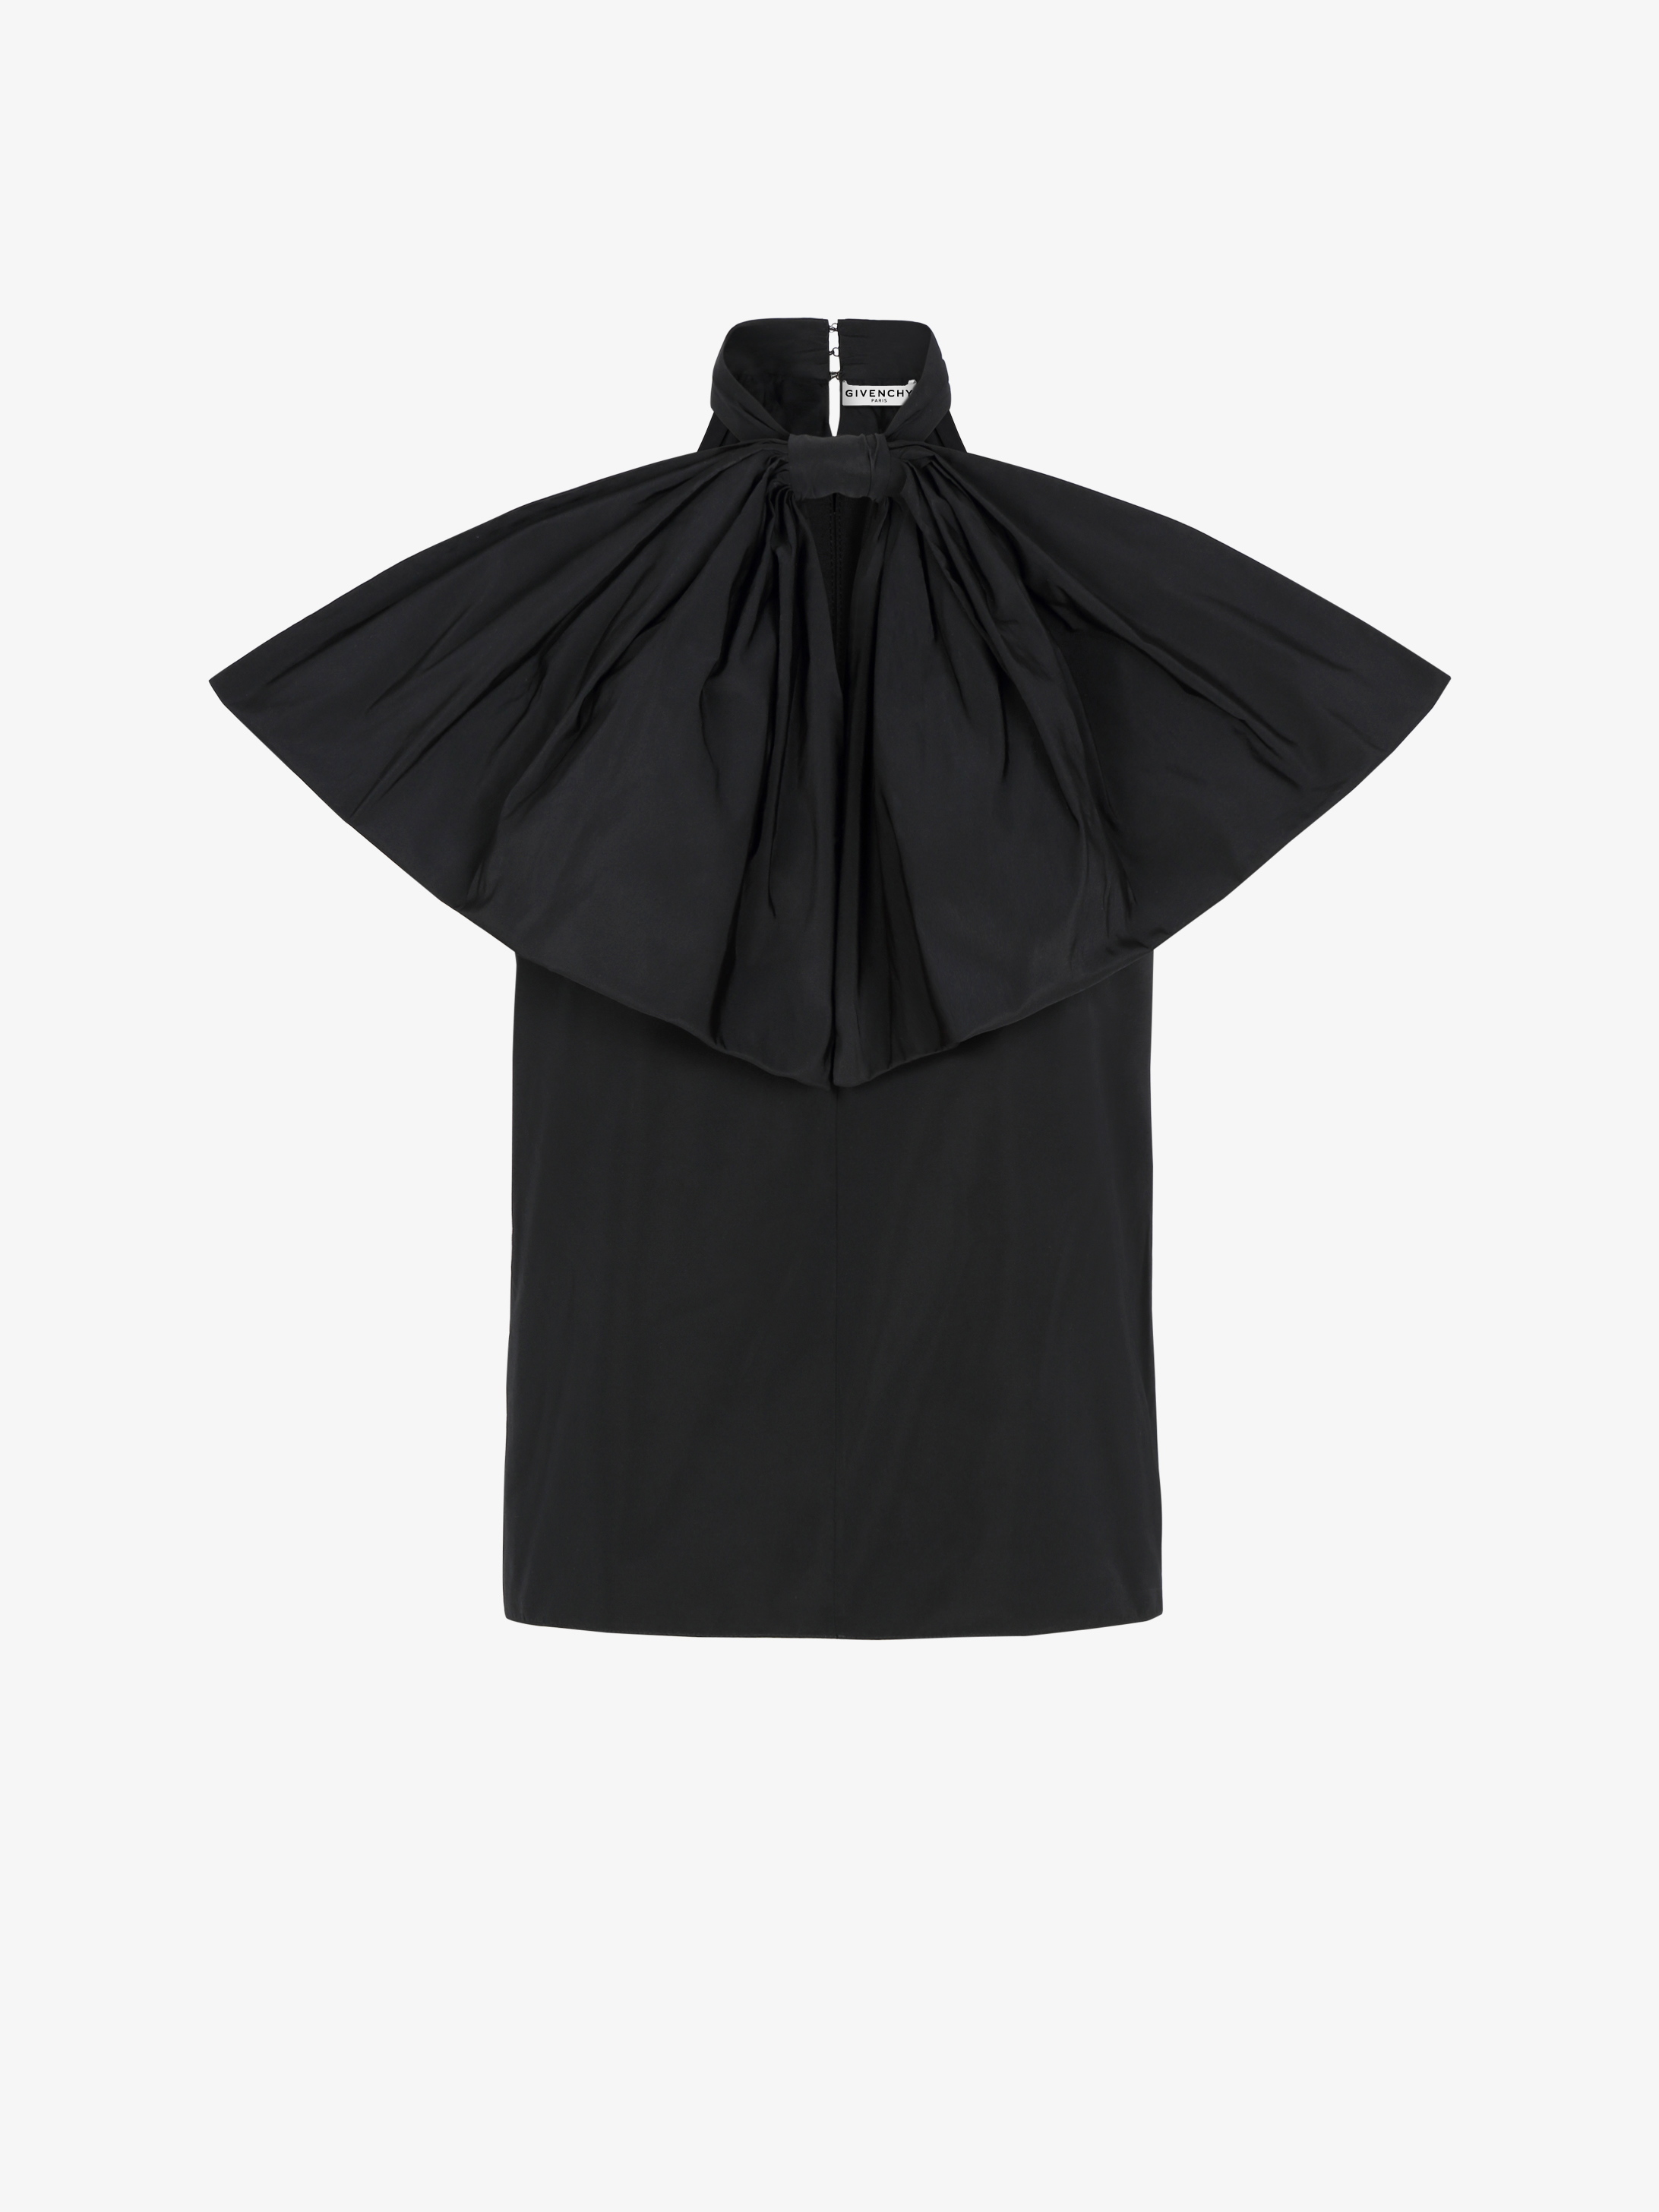 Top in taffetas with oversized bow